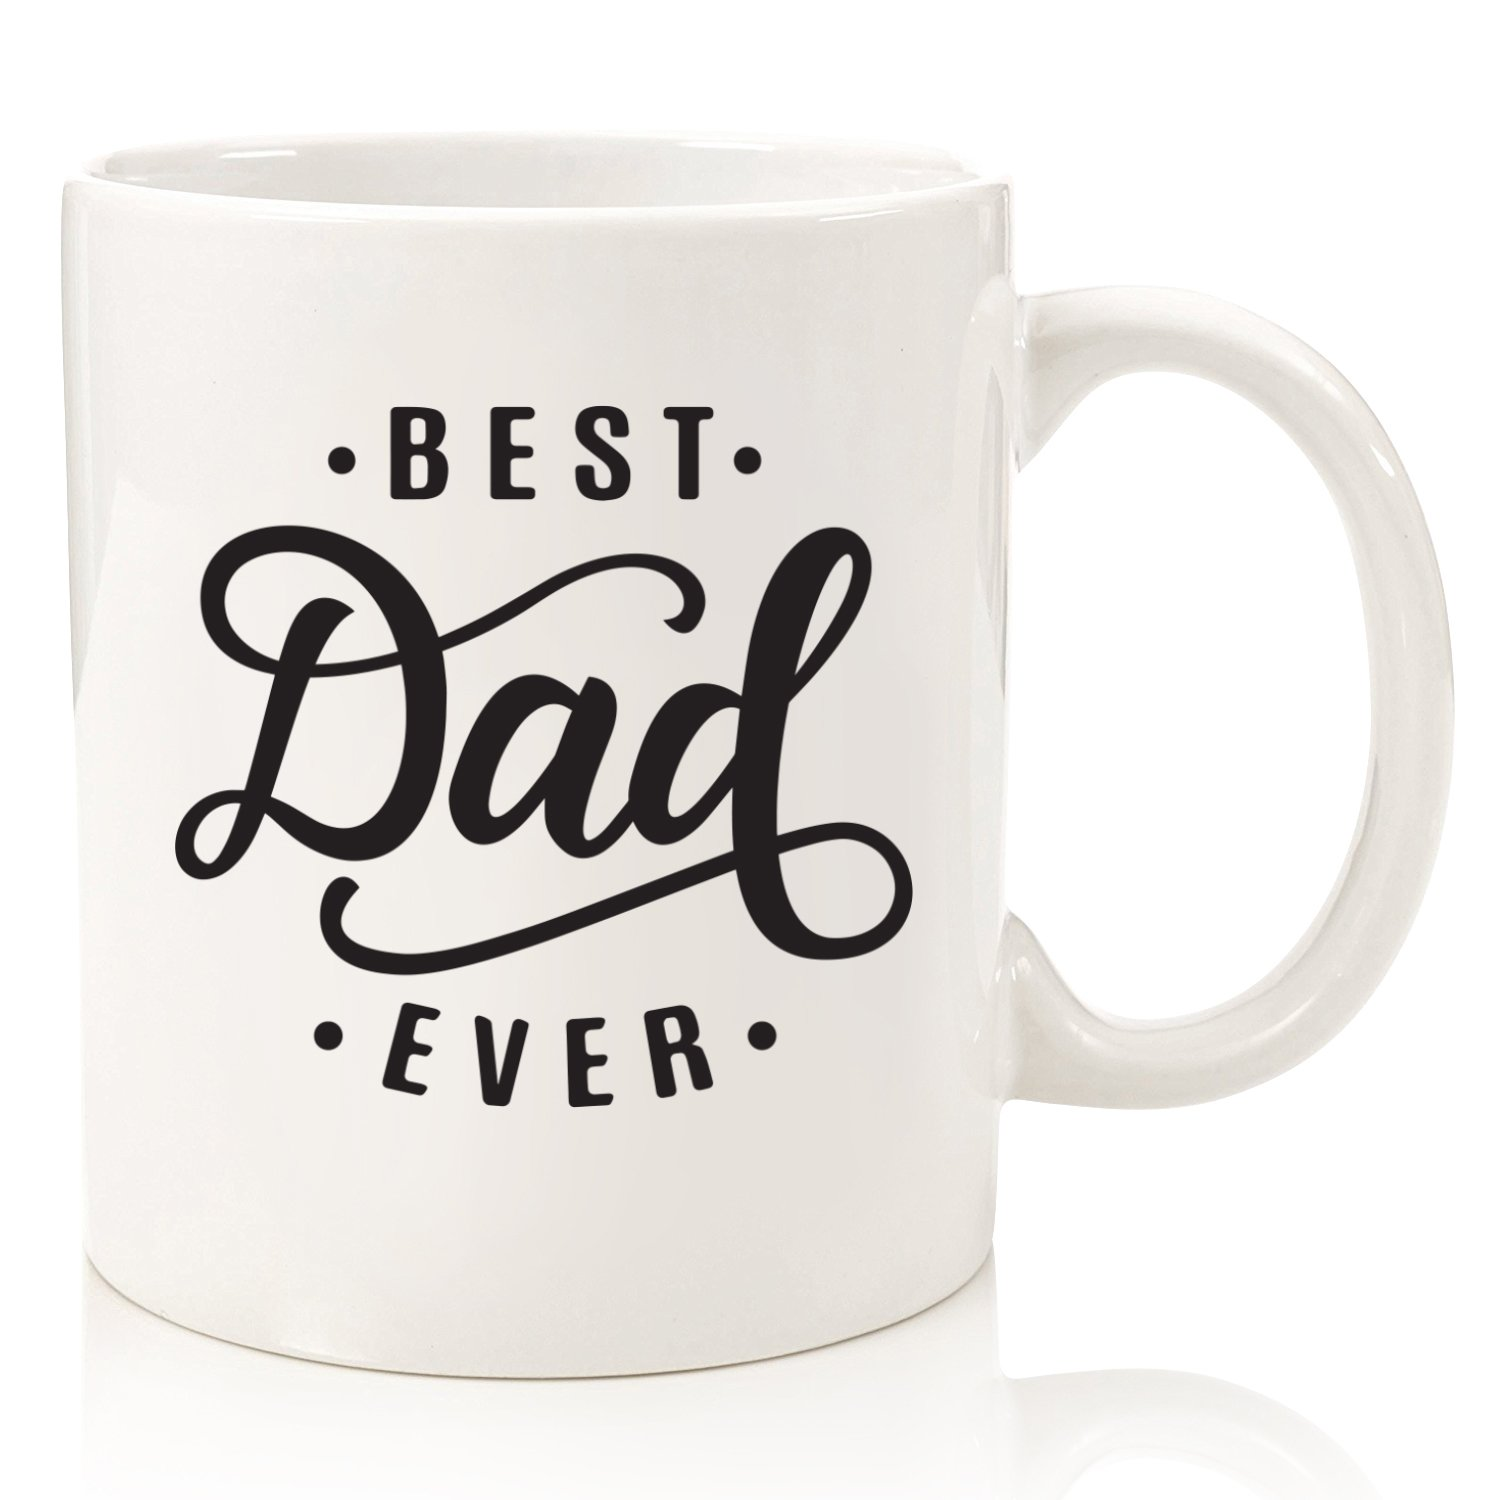 aec43b8e Best Dad Ever Gift Mug - Top Fathers Day Gifts For Dads, Husband, Men -  Unique Gift Idea For Him From Daughter, Son, Wife - Cool Birthday Present For  a New ...